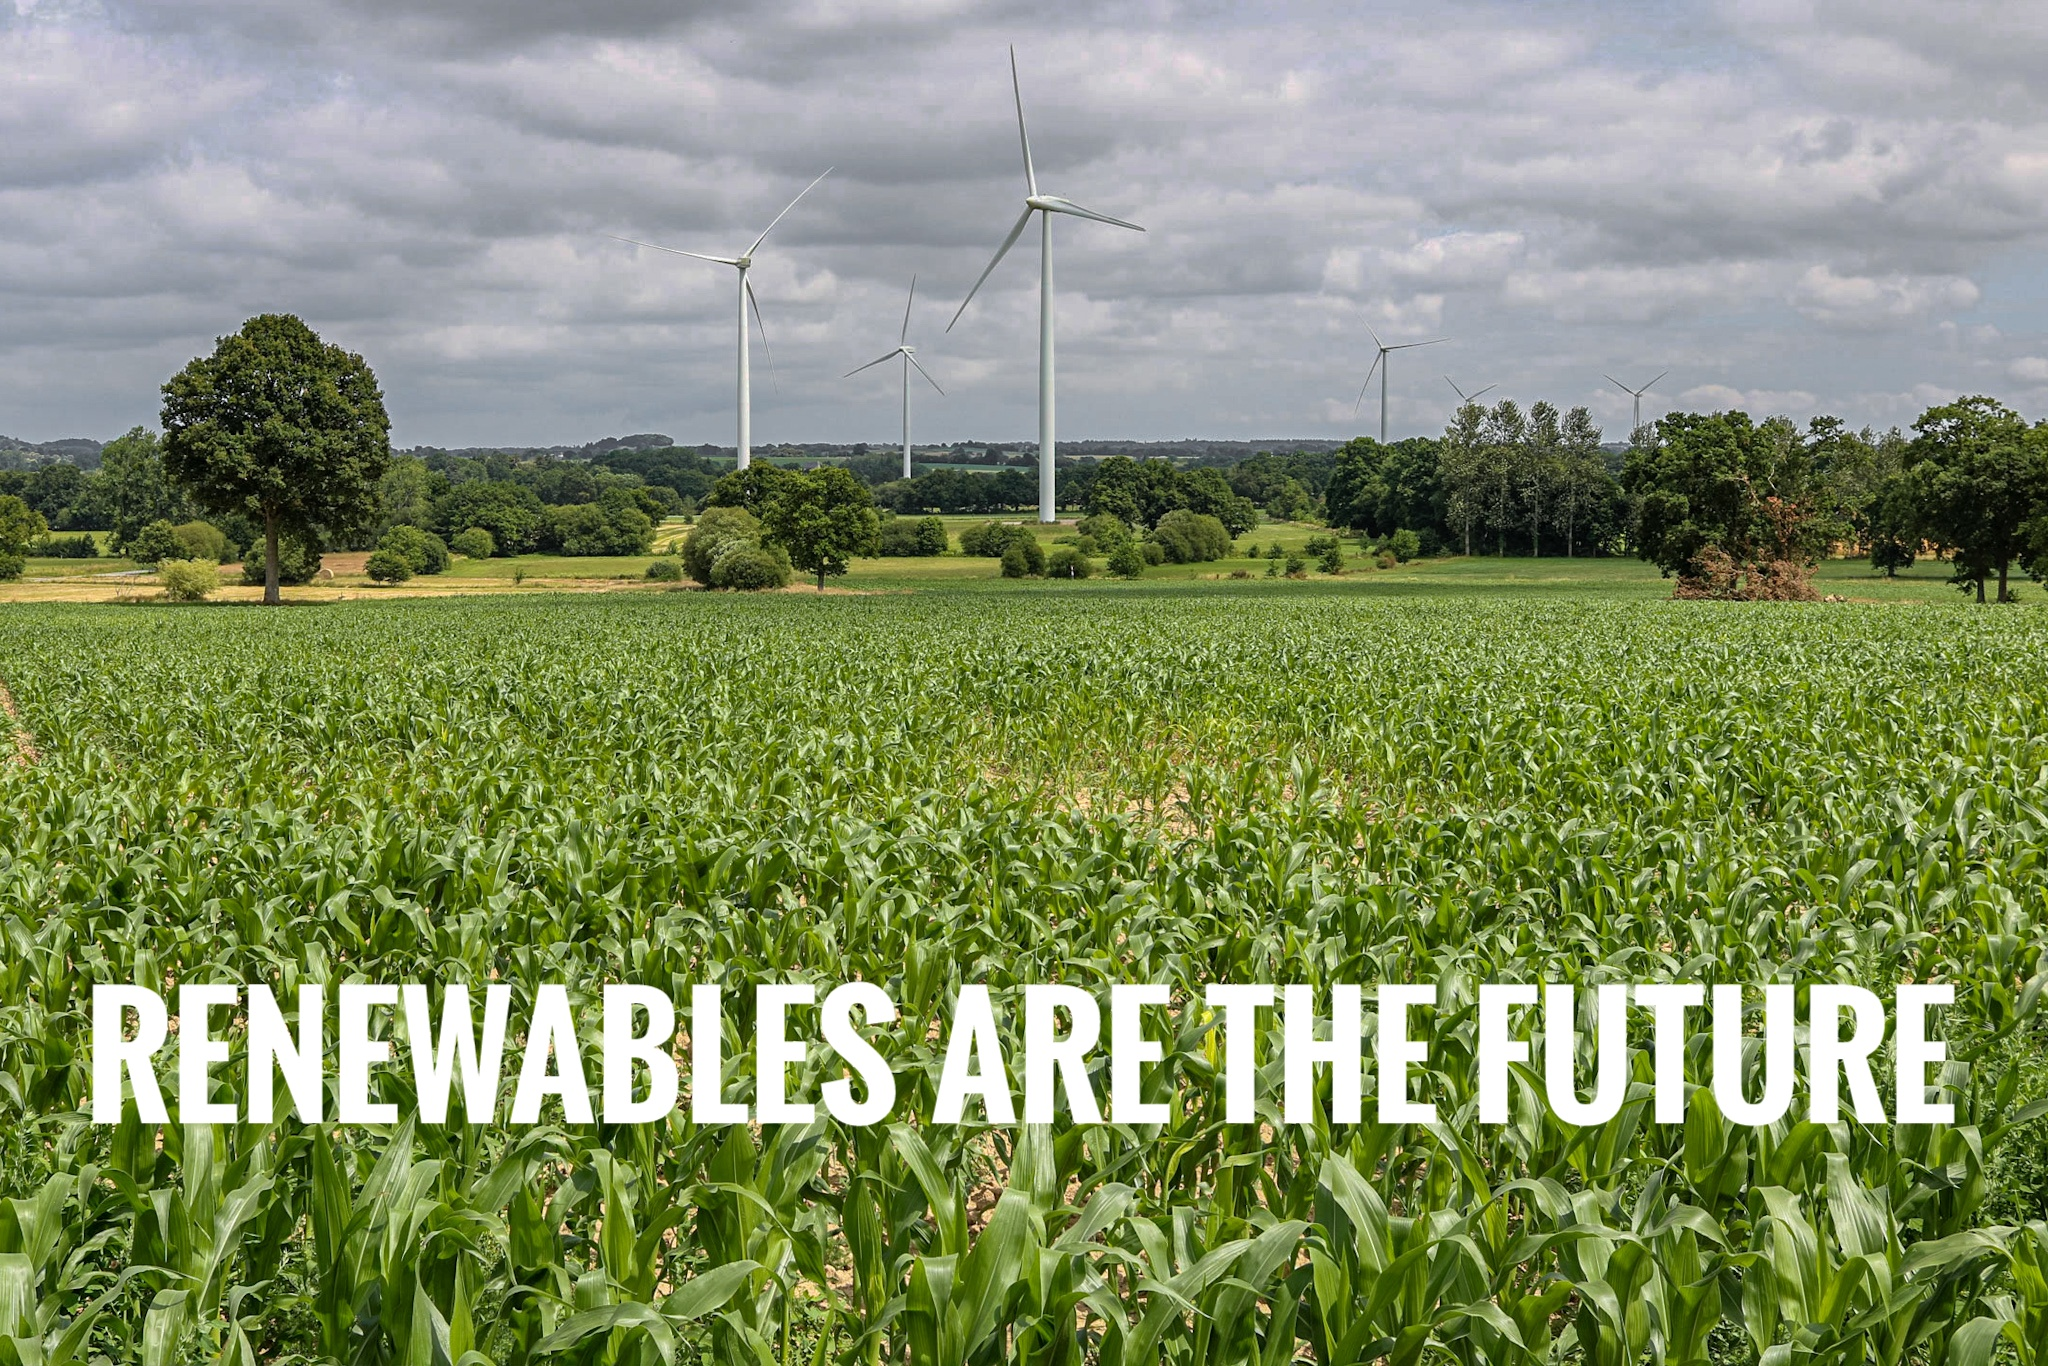 Renewables are the Future